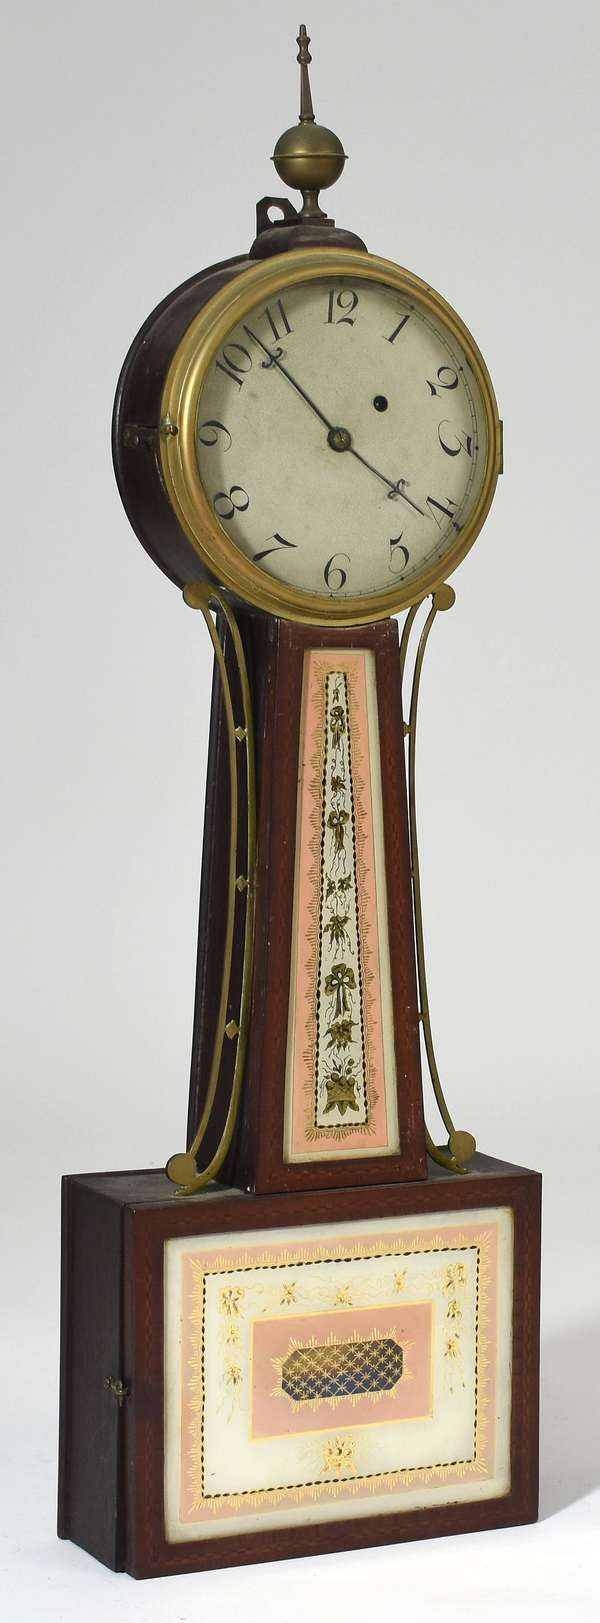 """19th C. banjo clock with original early eglomise tablets, inlaid case, 34""""H."""